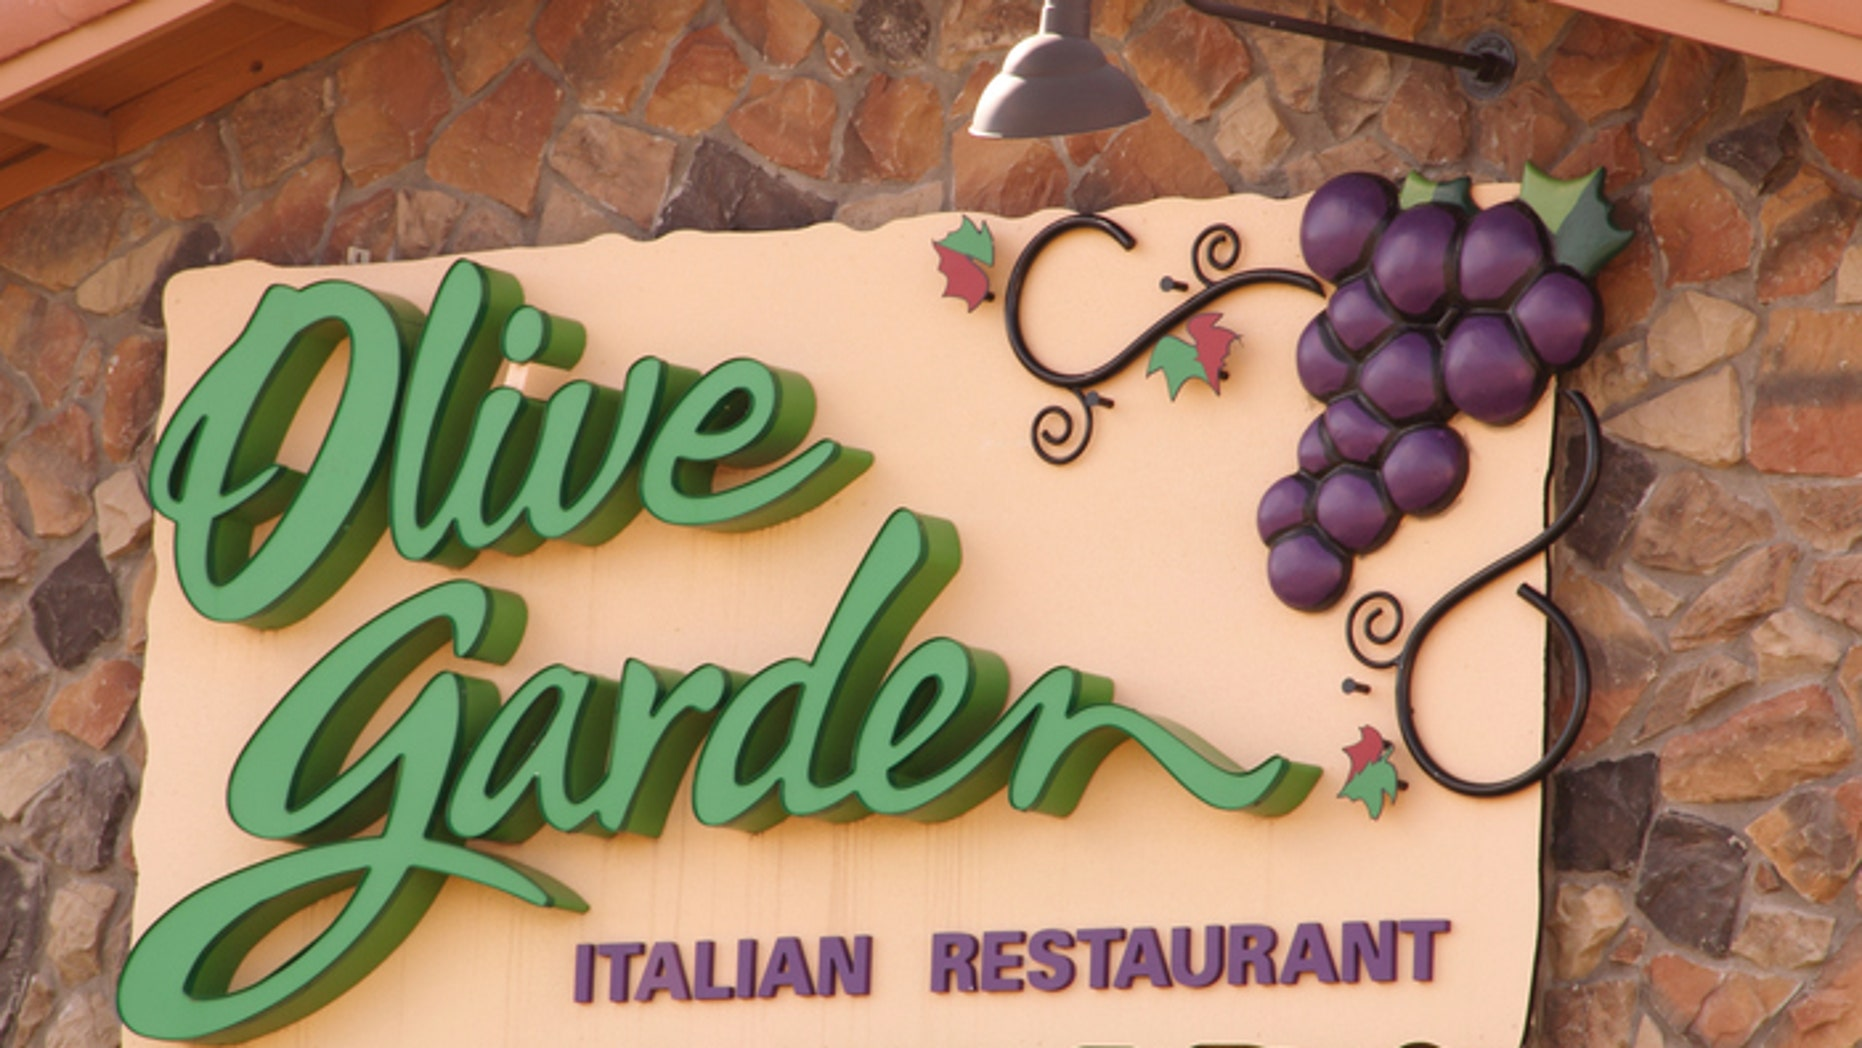 Olive Garden has seen sales improve with new menu options.